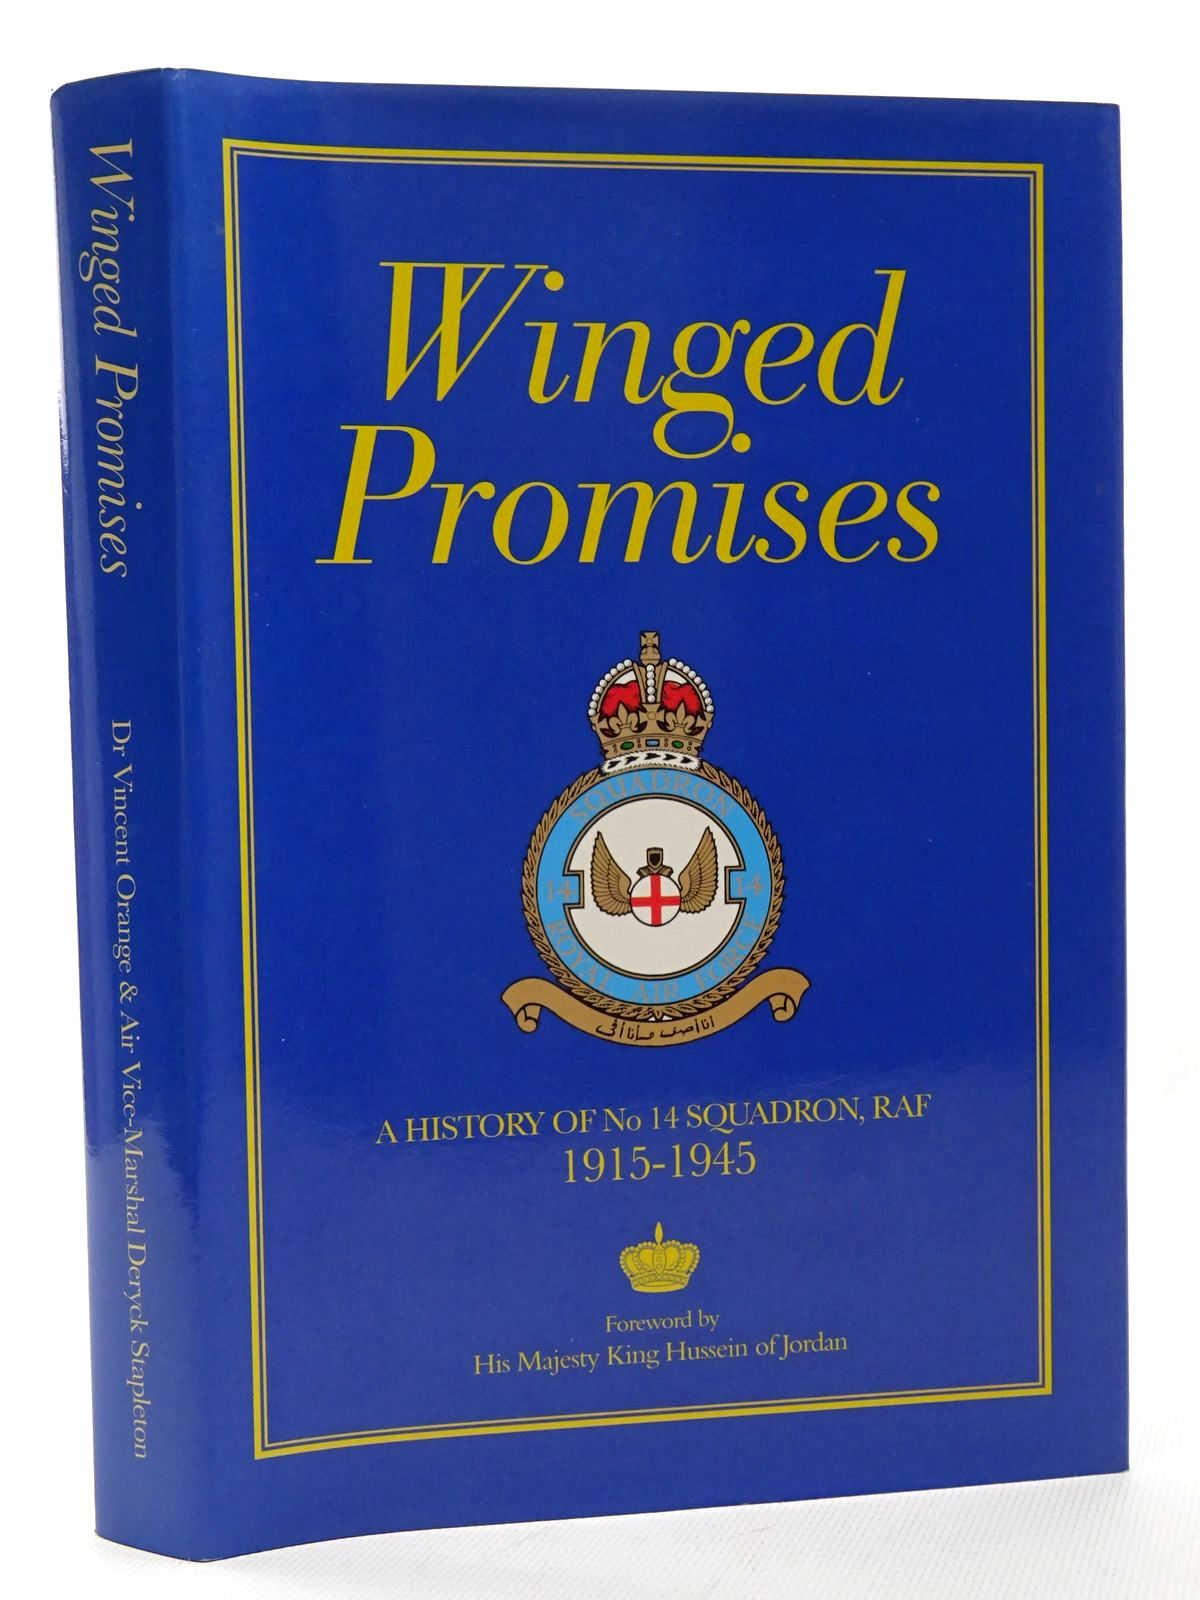 Photo of WINGED PROMISES A HISTORY OF No. 14 SQUADRON RAF 1915-1945 written by Orange, Vincent<br />Deramore, Lord published by Royal Air Force Benevolent Fund Enterprises (STOCK CODE: 1610207)  for sale by Stella & Rose's Books